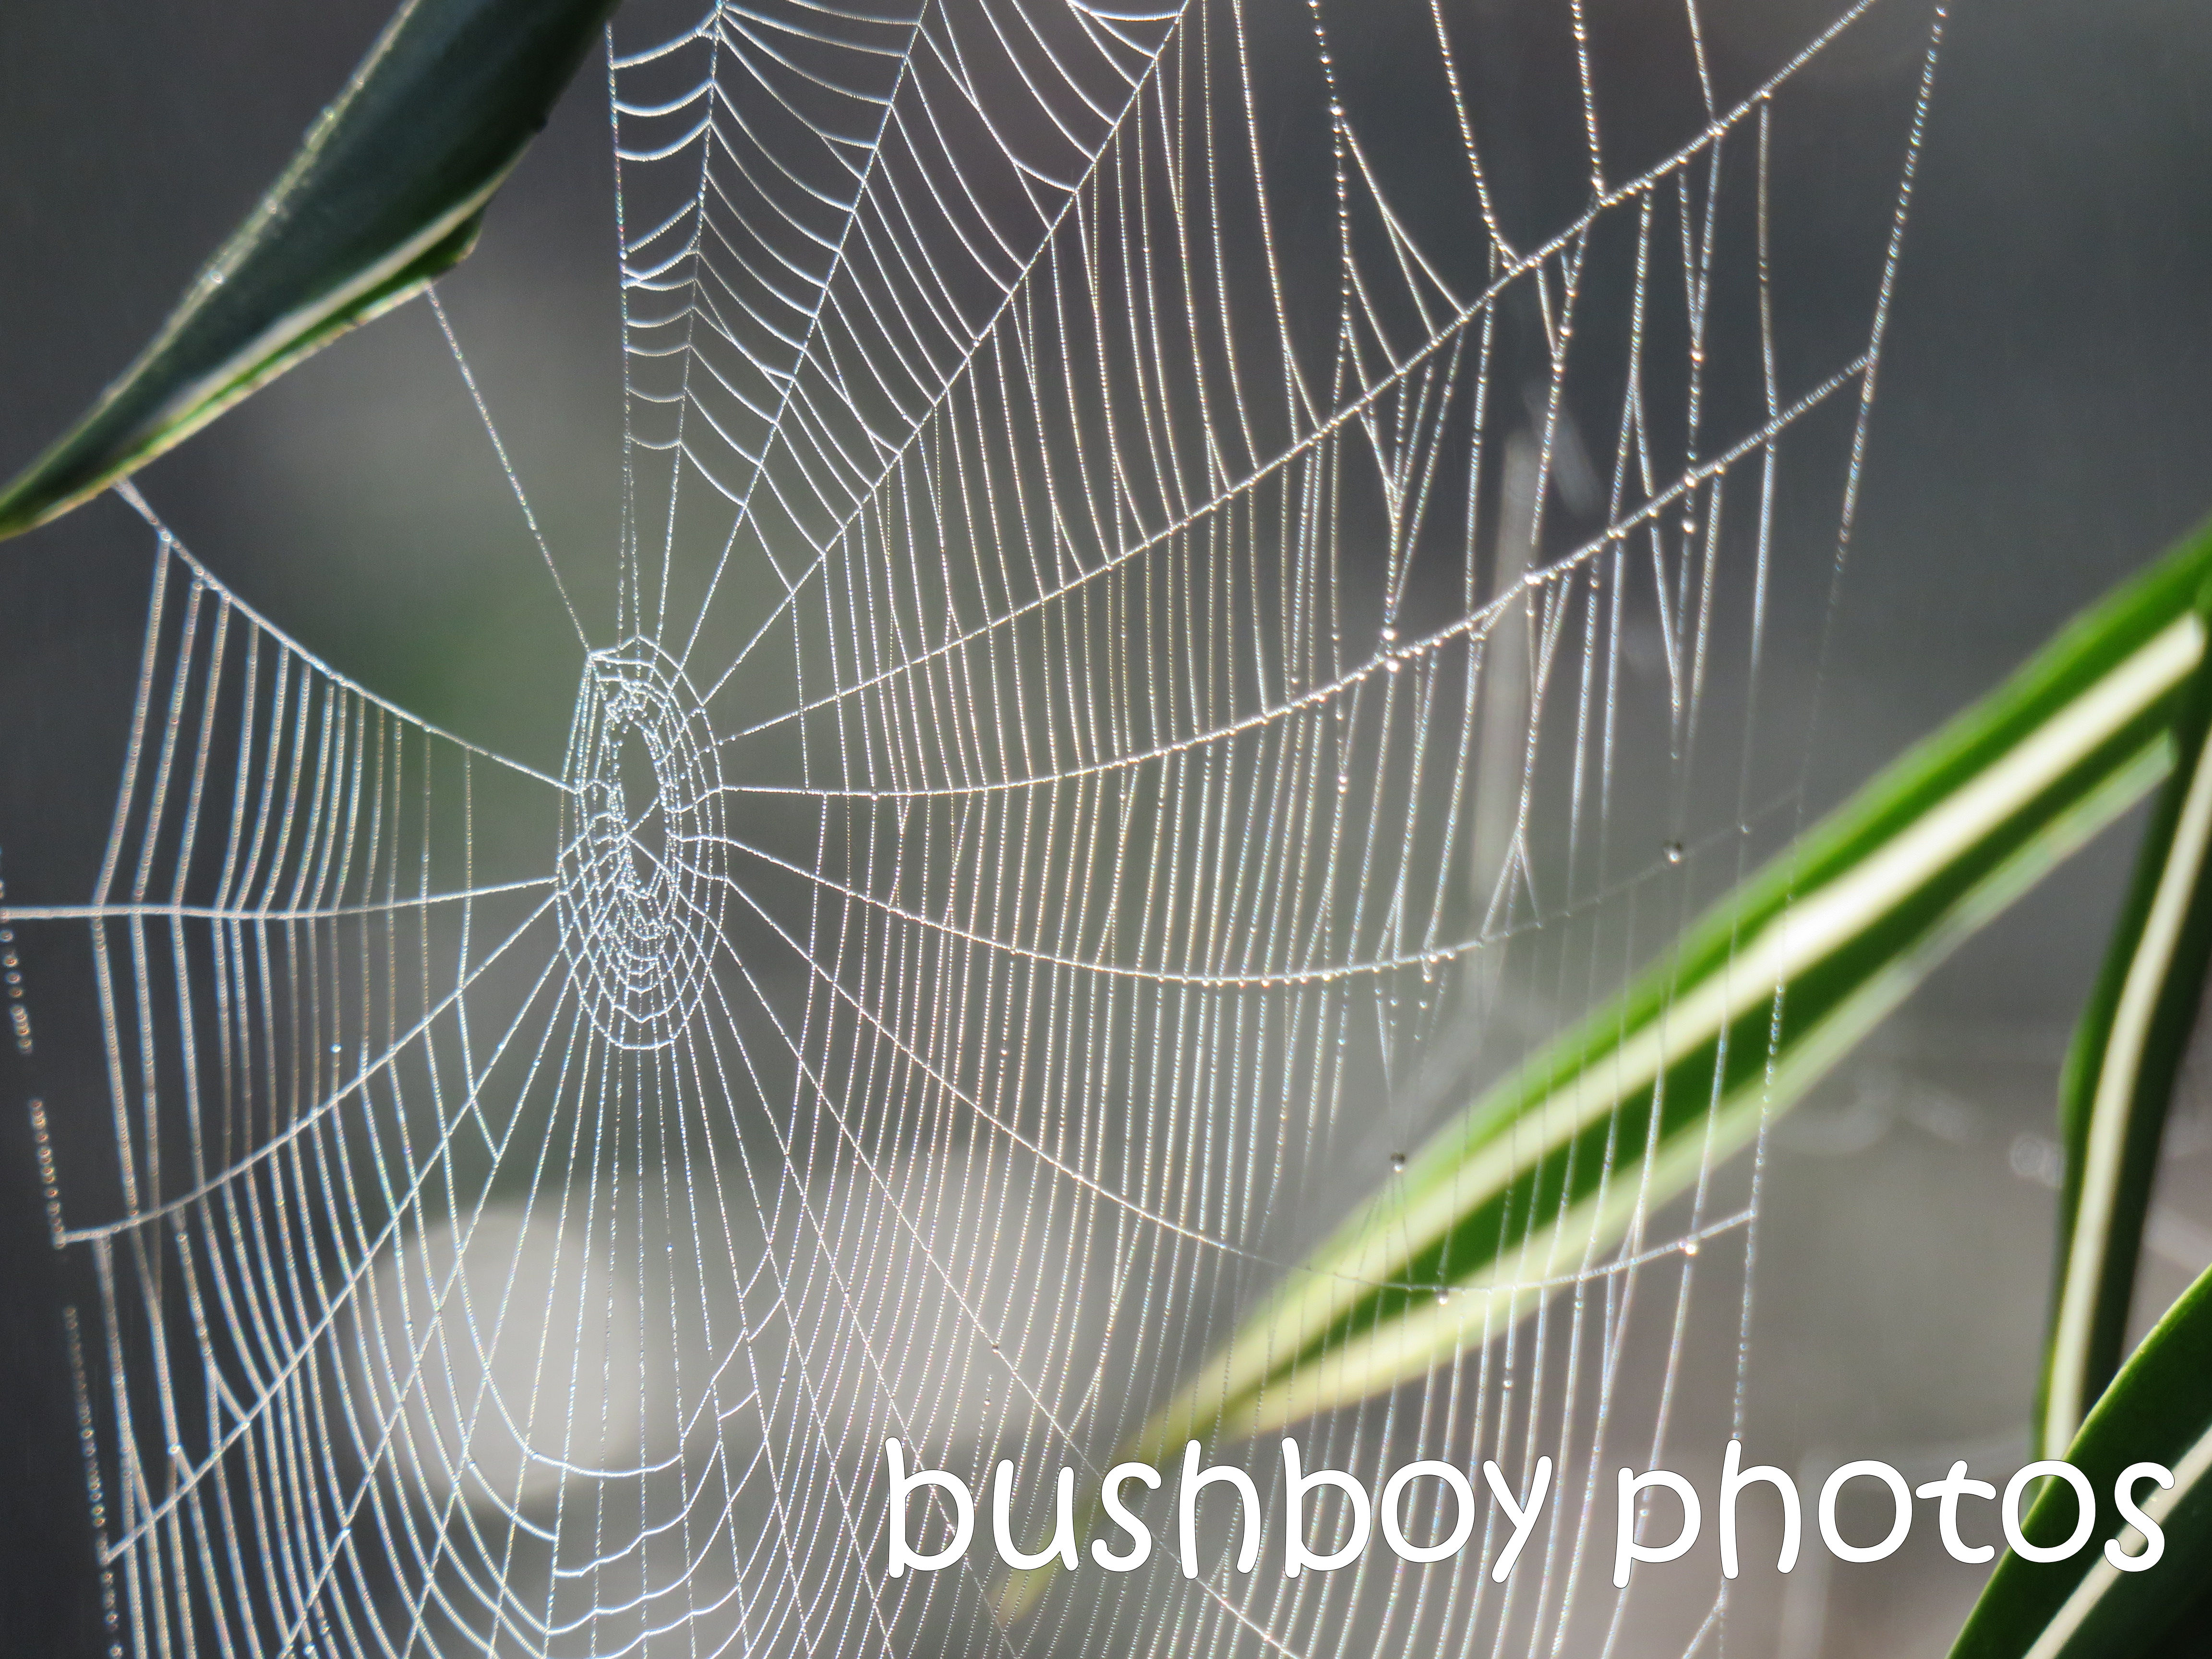 spider web01_named_aug 2016